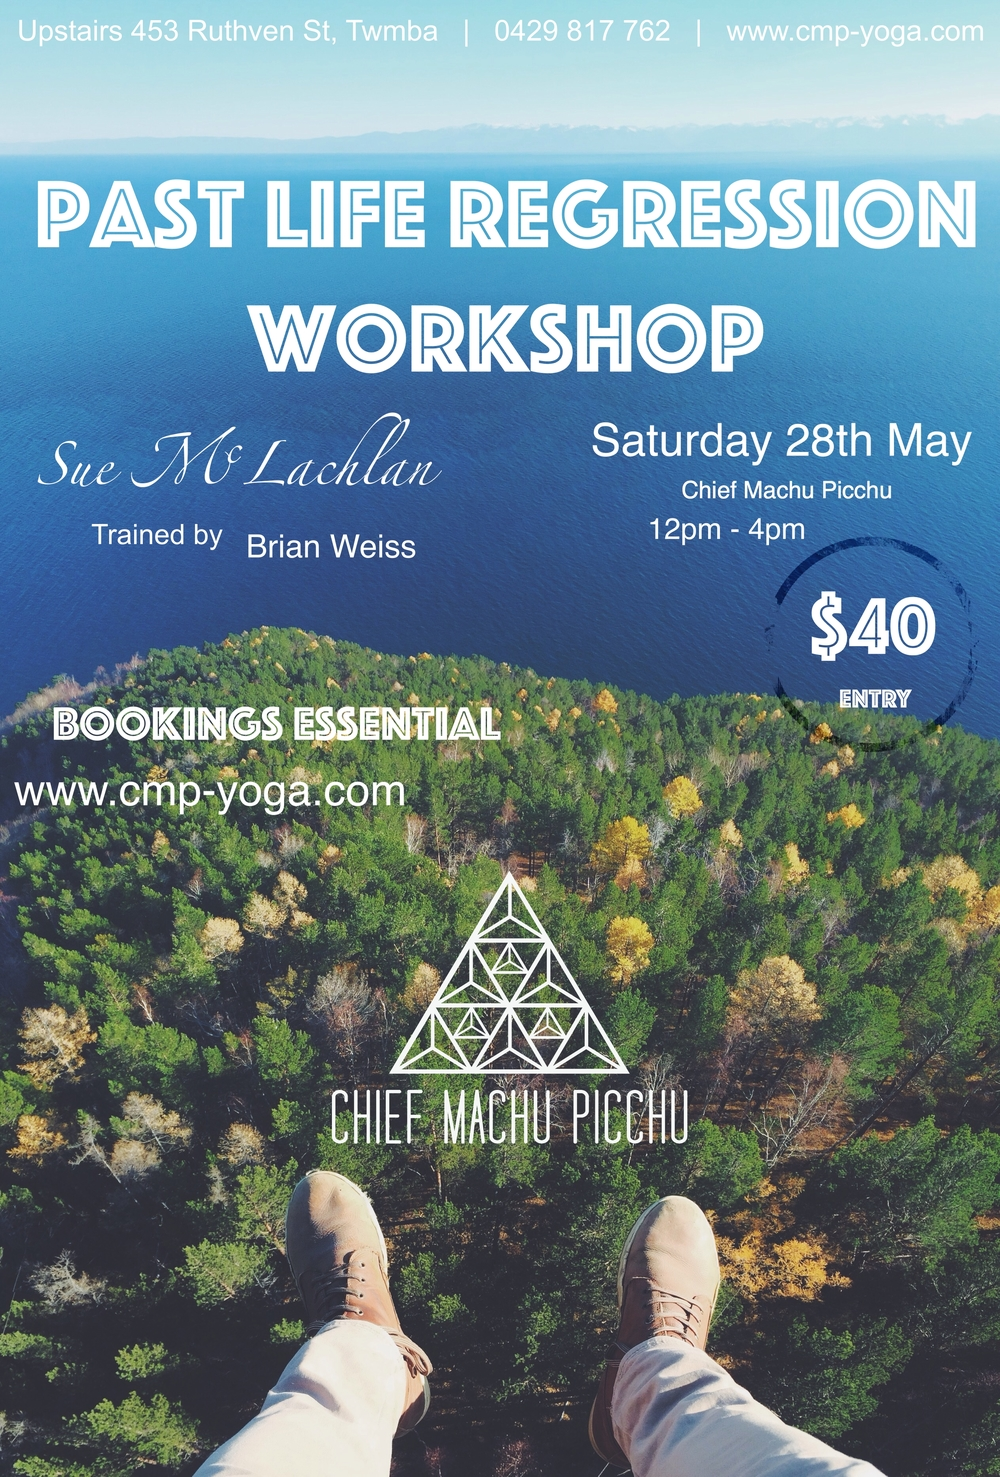 Past Life Regression Workshop at our Studio on 28th of May with Sue McLachlan $40 Entry Book Now!